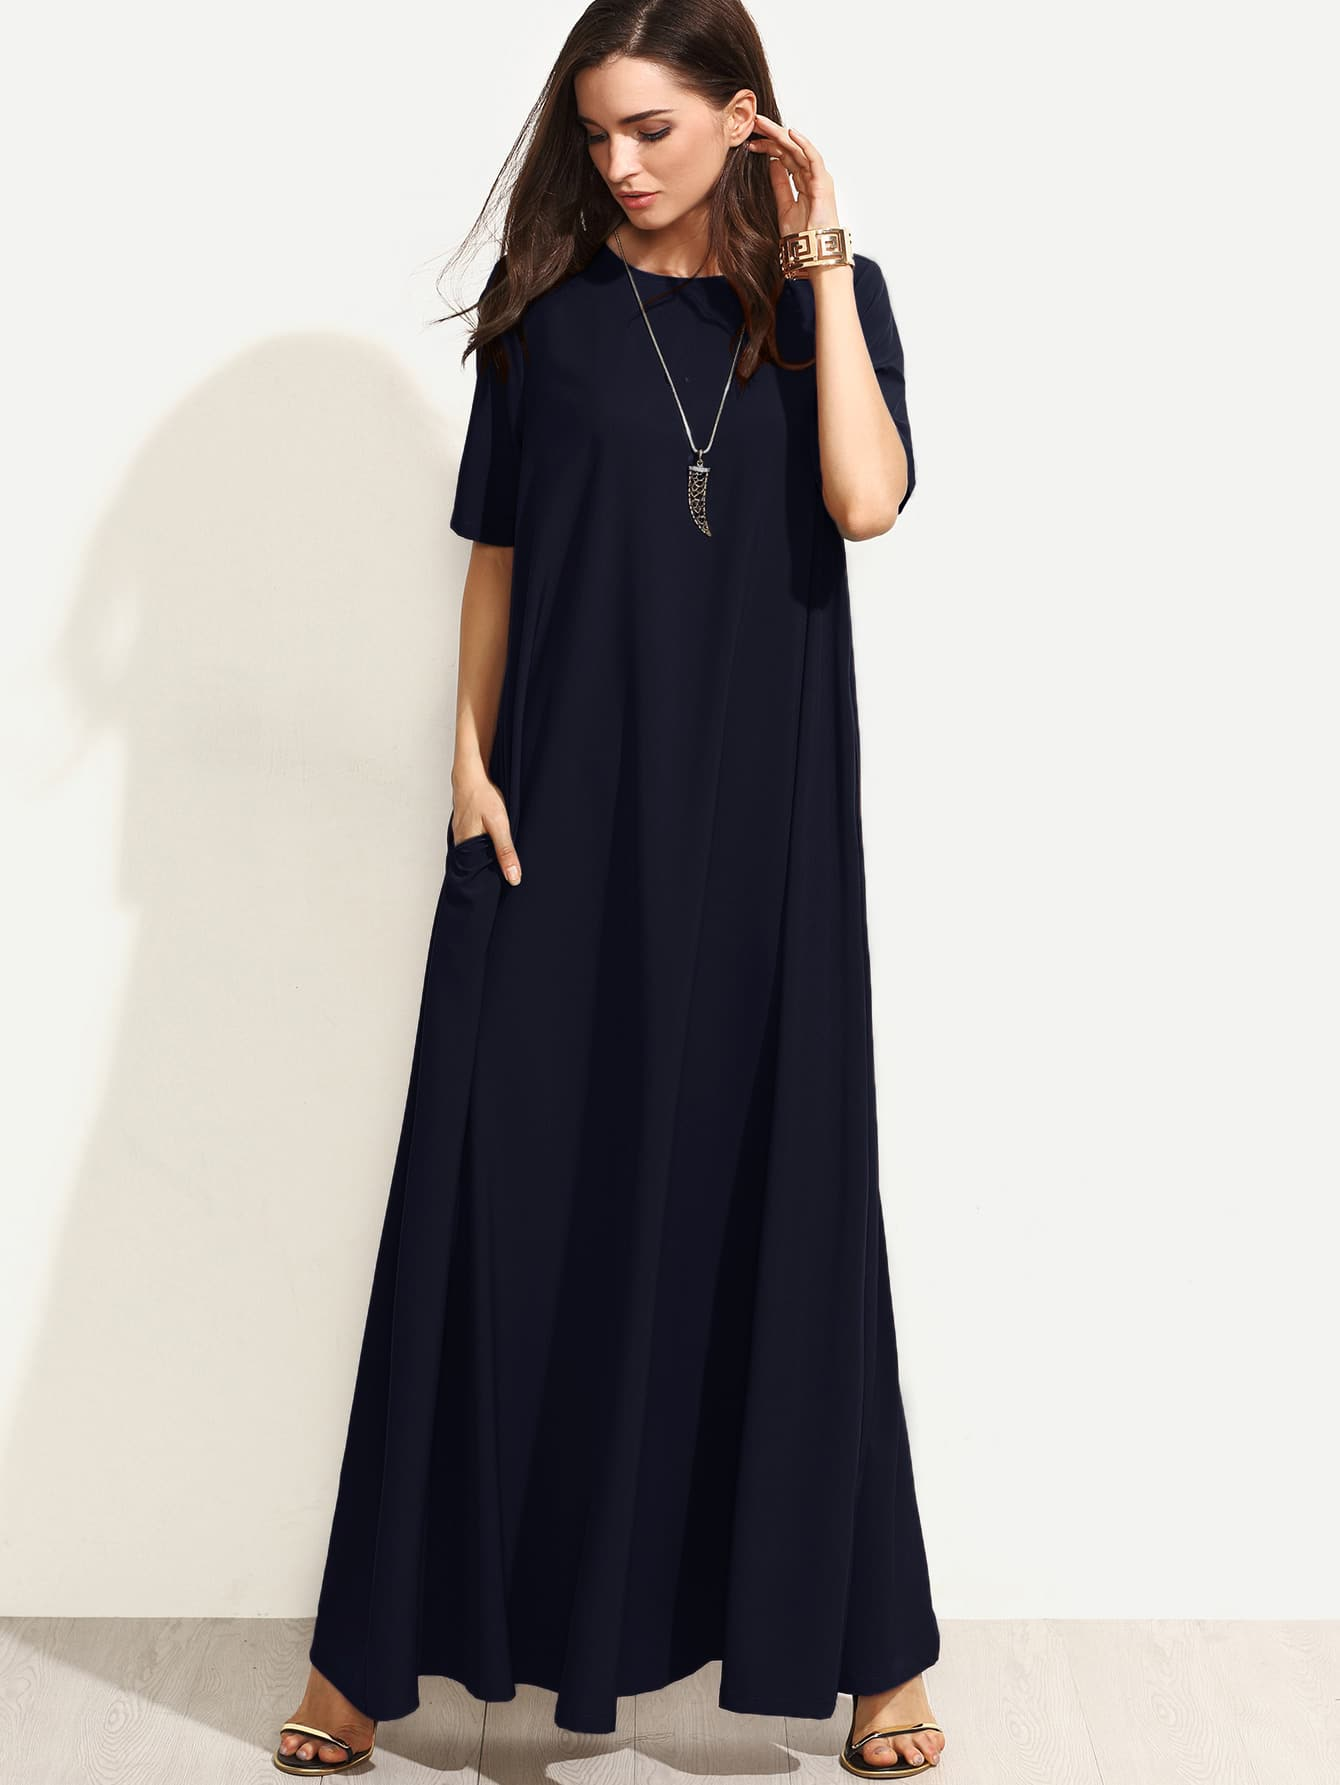 Zipper Back Full Length Swing Tee Dress pocket full length tee dress page 8